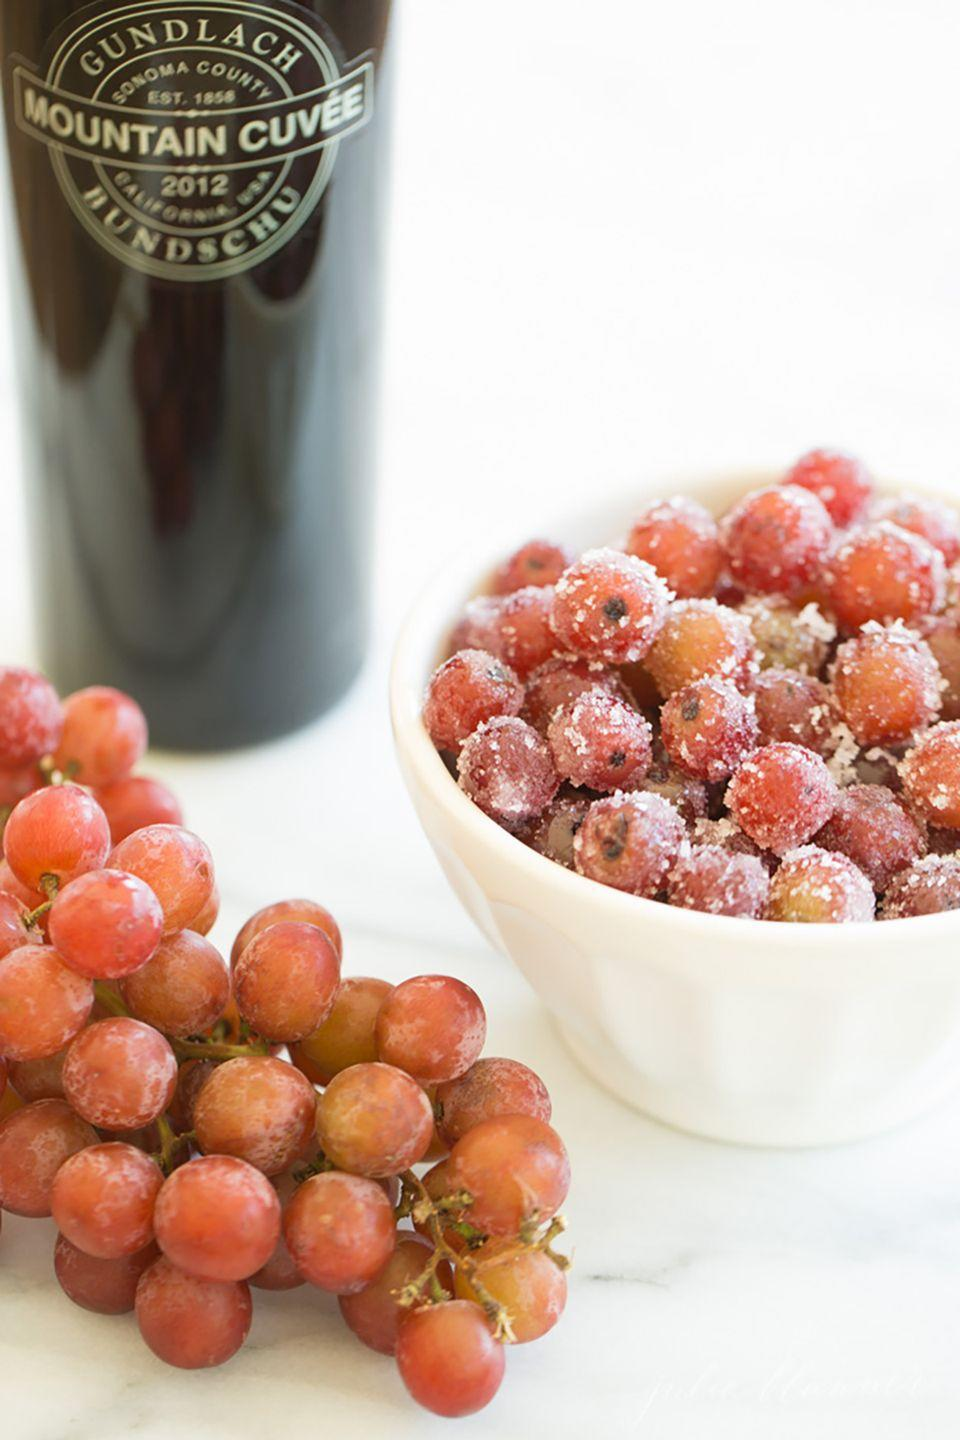 "<p><span class=""redactor-invisible-space"">A sweet, boozy dessert alternative for your Game Day table, you'll just need red wine, grapes, and sugar for this recipe.</span></p><p><strong>Get the recipe at <a href=""http://julieblanner.com/frozen-grapes-marinated-in-wine/"" rel=""nofollow noopener"" target=""_blank"" data-ylk=""slk:Julie Blanner"" class=""link rapid-noclick-resp"">Julie Blanner</a>. </strong></p>"